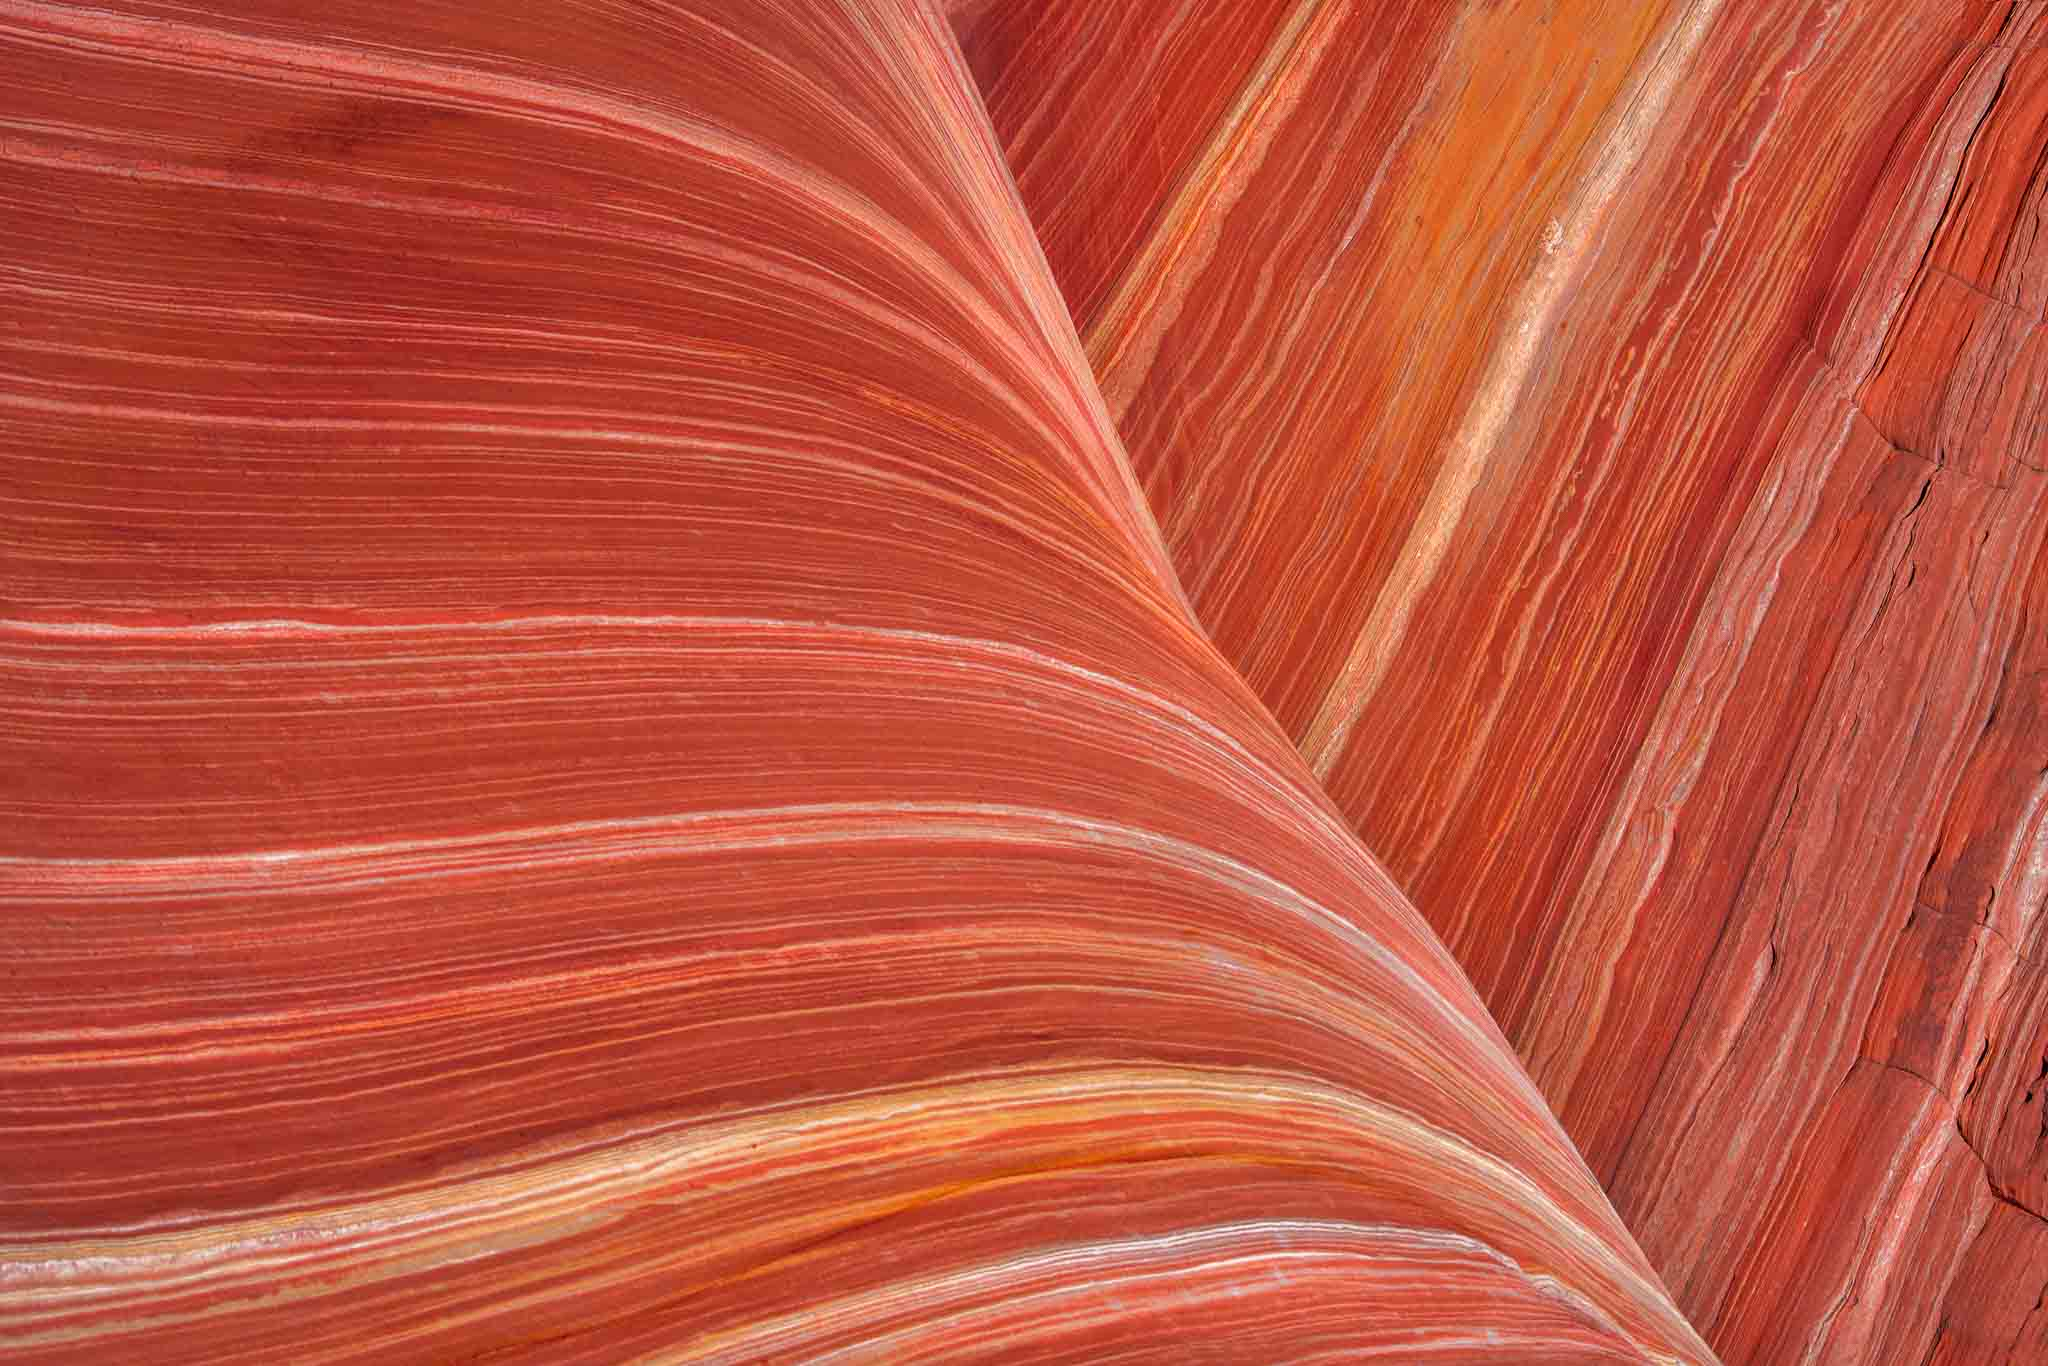 Abstract image of The Wave, USA